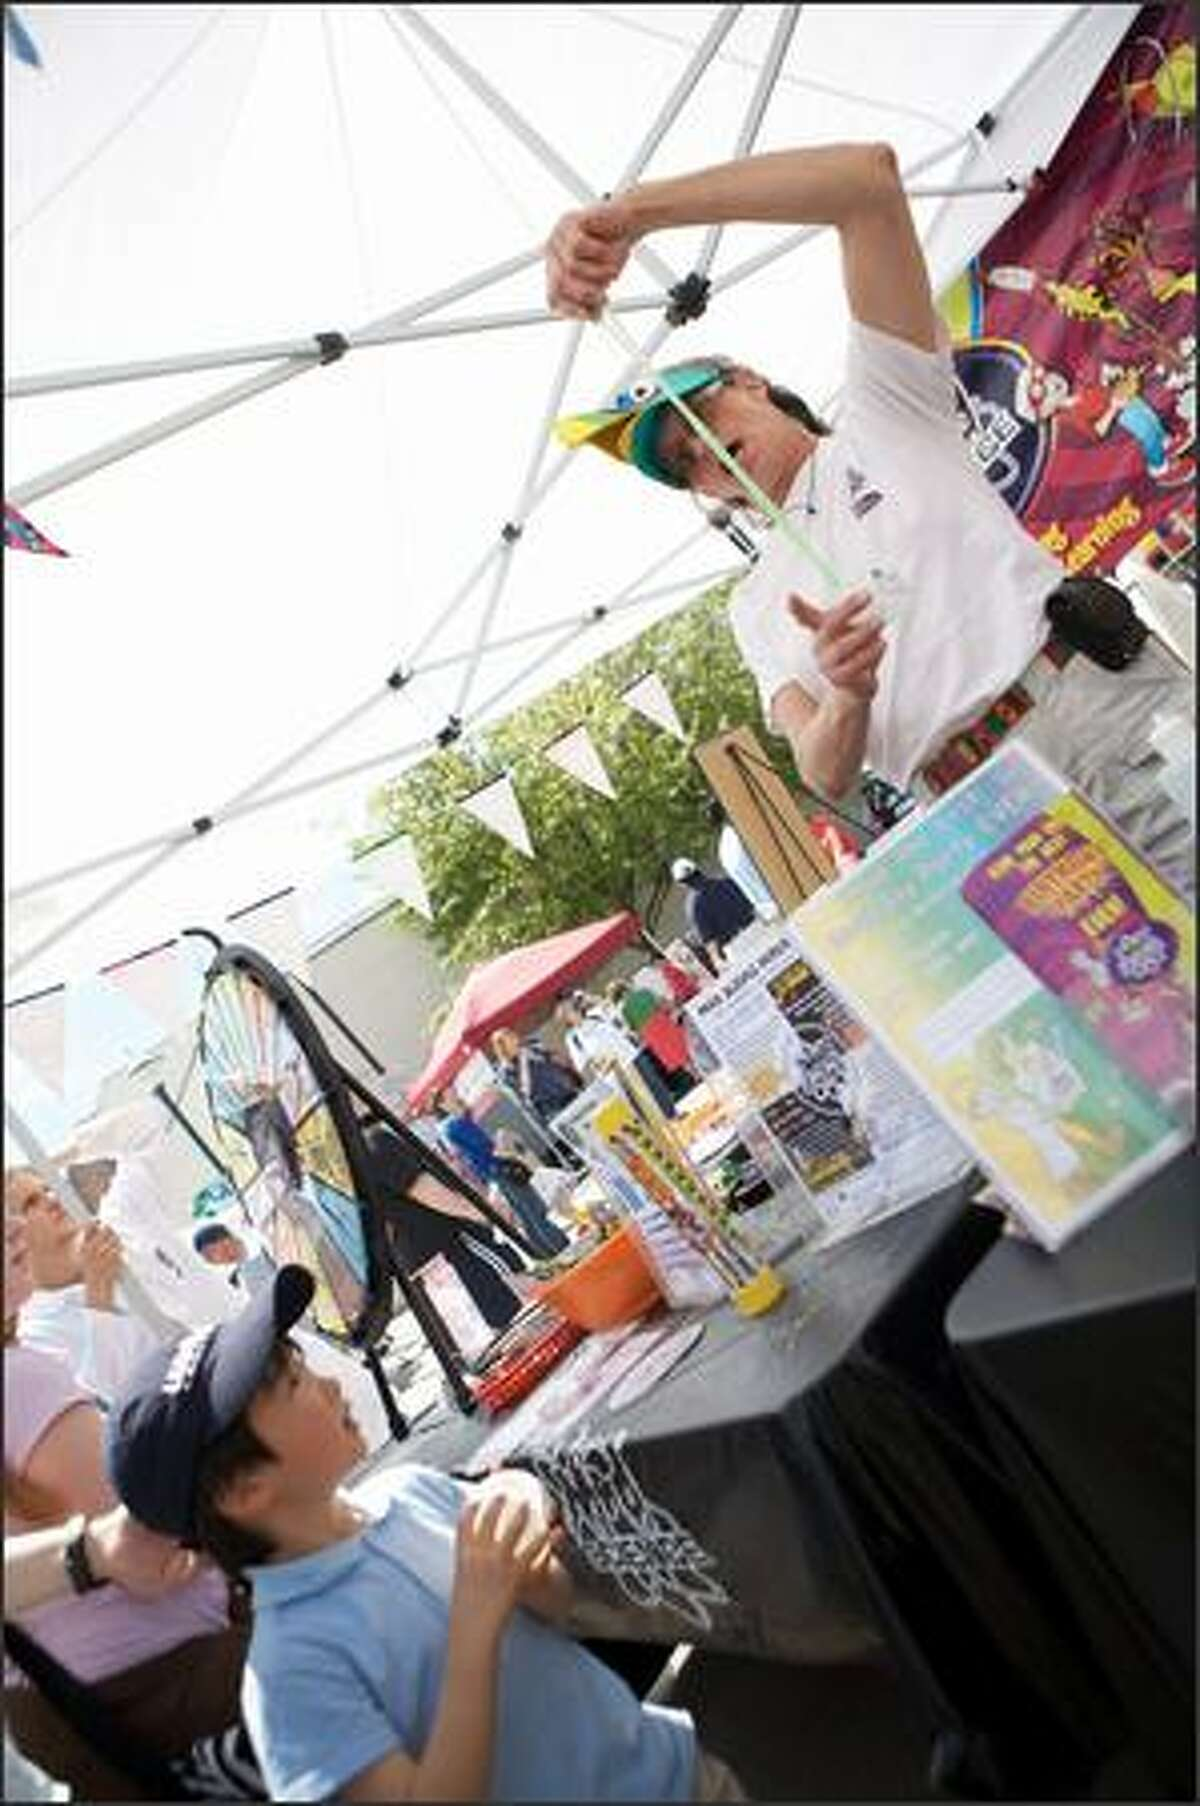 Ethan Matsubayashi of Seattle looks on at a demonstration at the Mad Science booth.